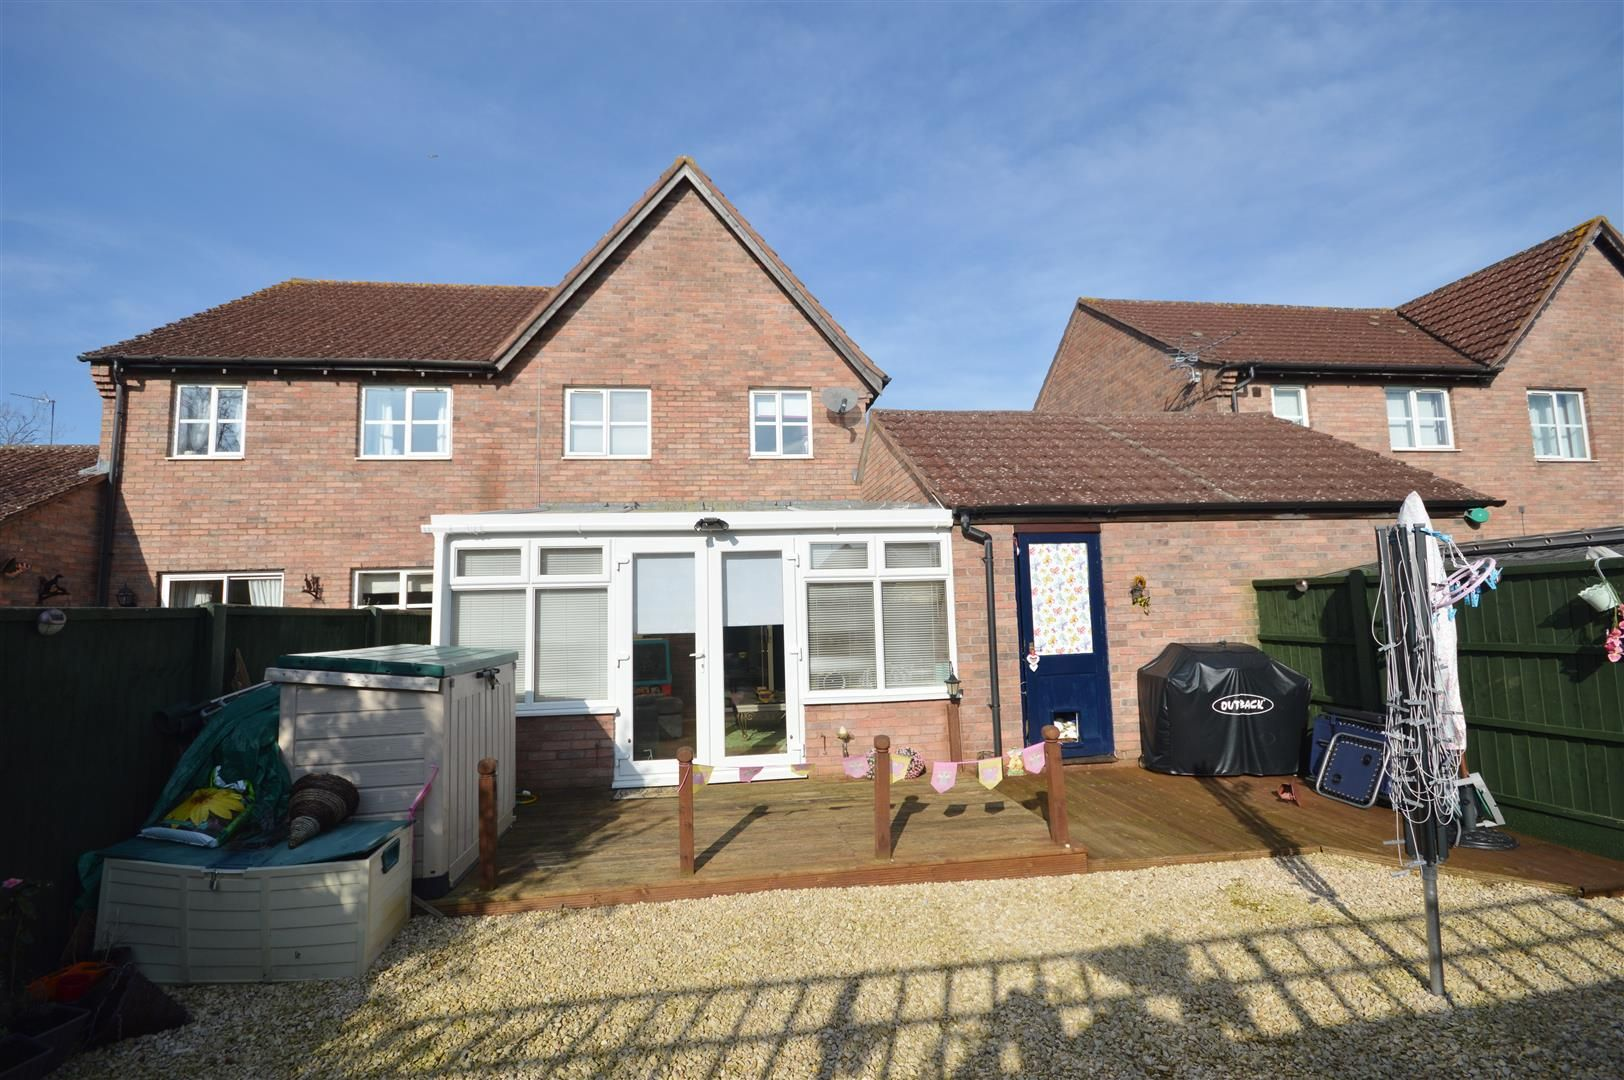 3 bed semi-detached for sale in Leominster 16